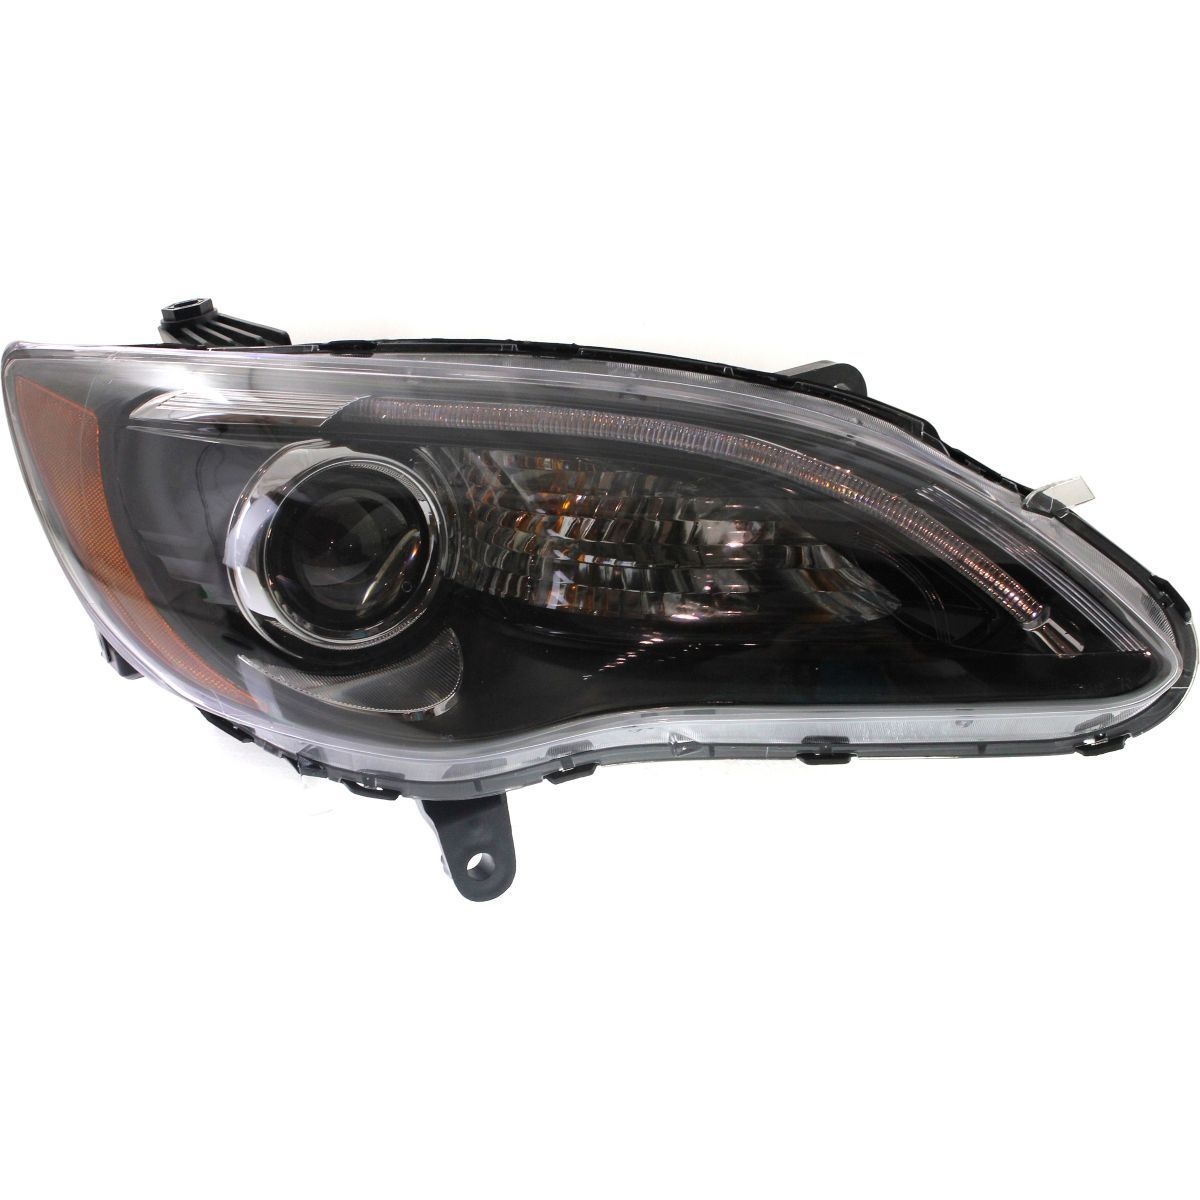 Chrysler 200 sedan 2011 2012 2013 2014 right passenger headlight S model